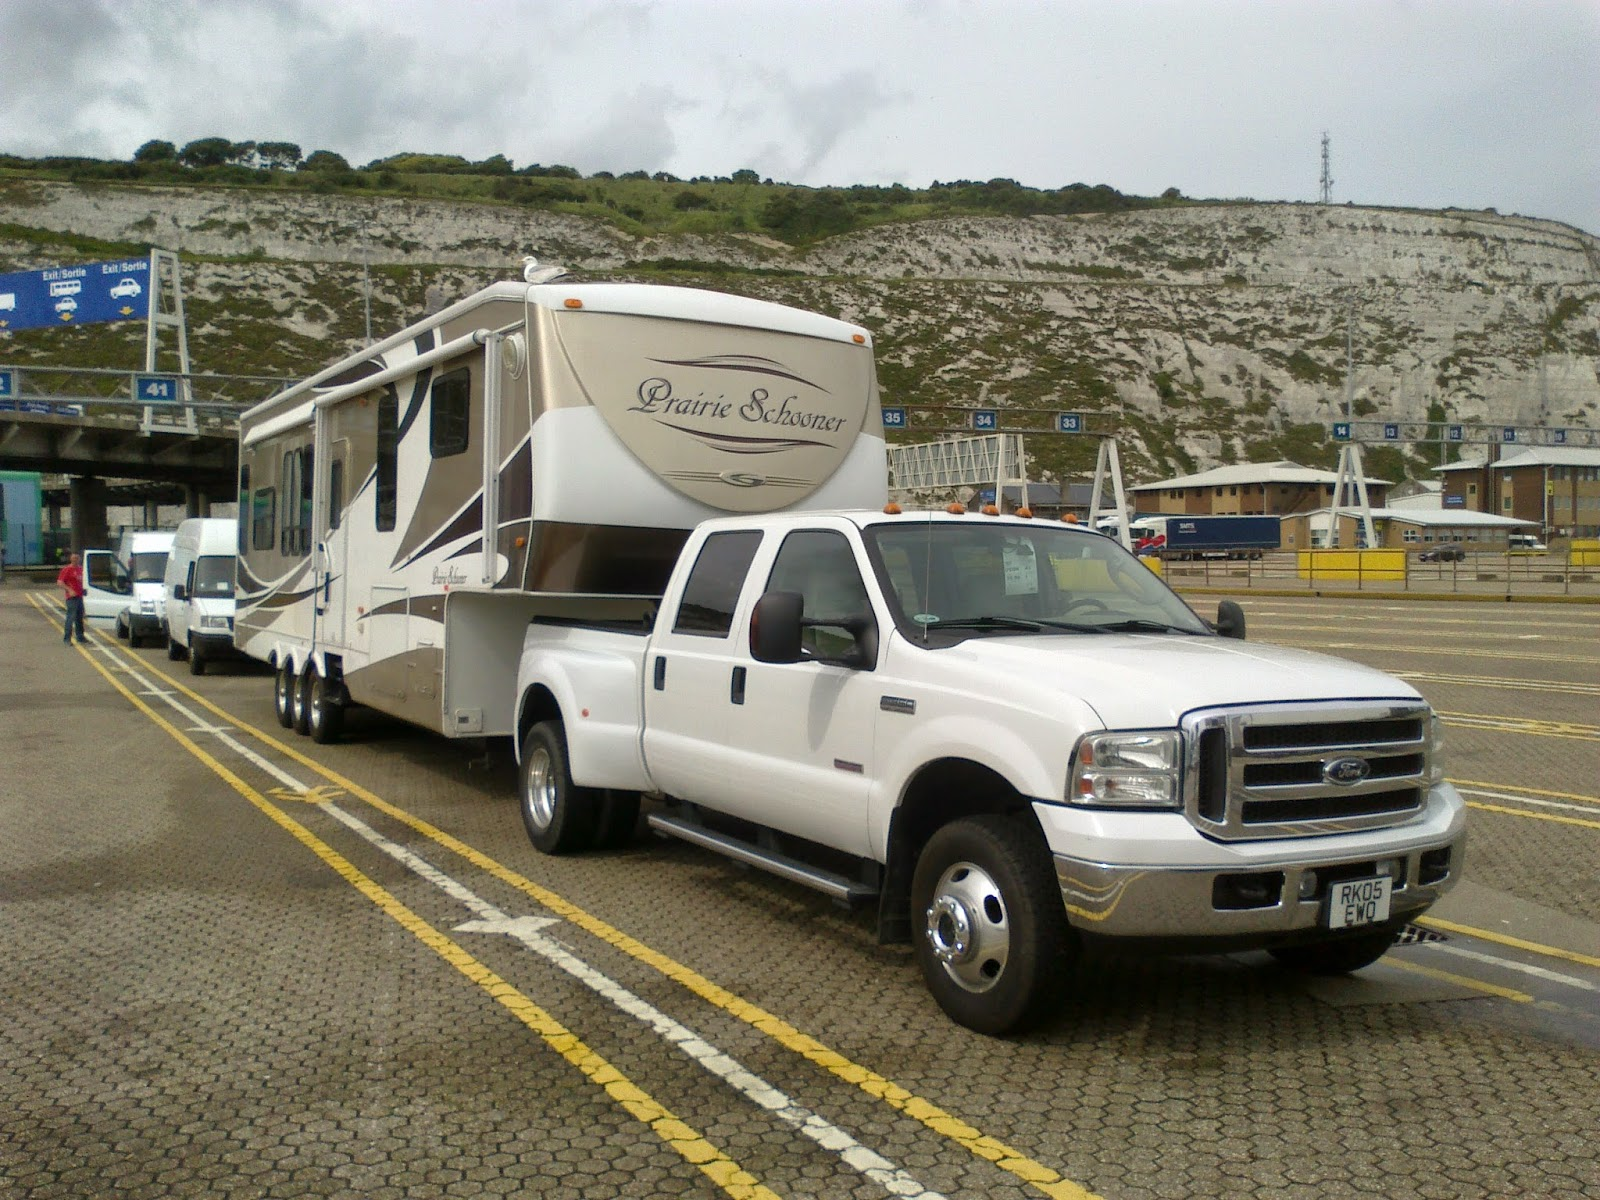 UK - Spain - Europe 5th wheel transport and delivery